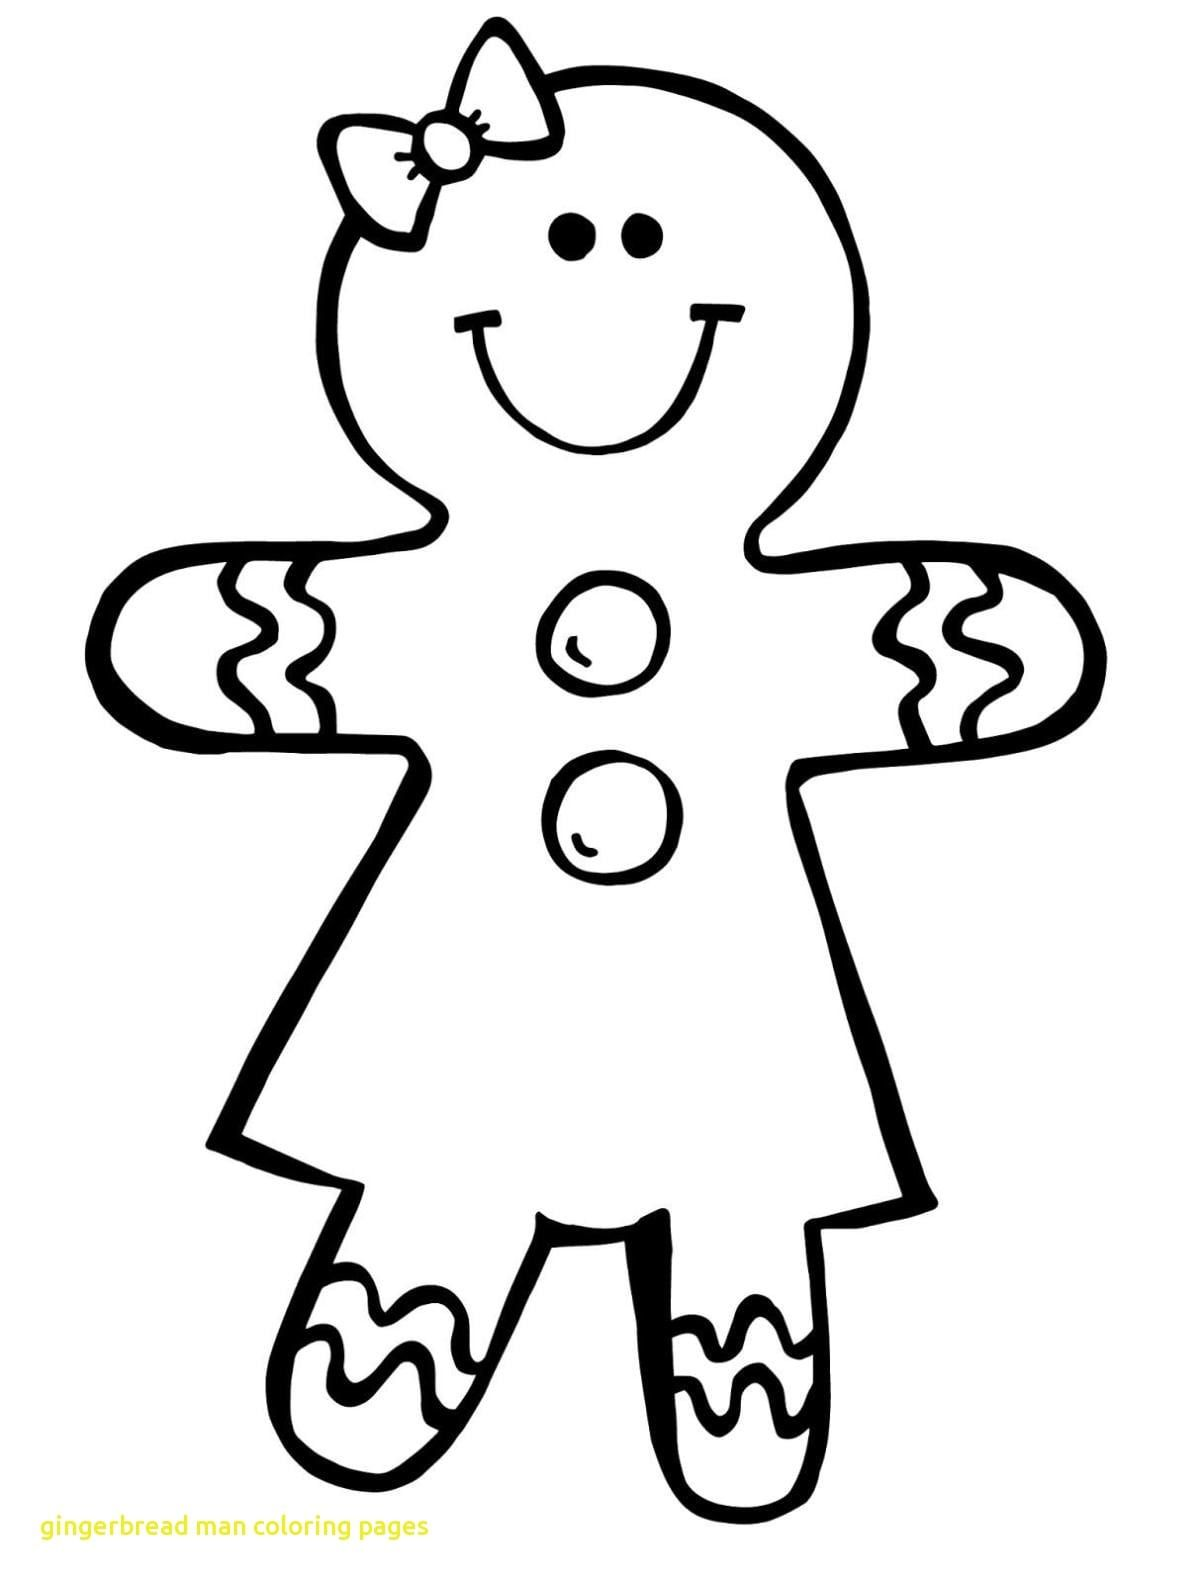 Gingerbread Man Coloring Page | Coloring Pages | Gingerbread